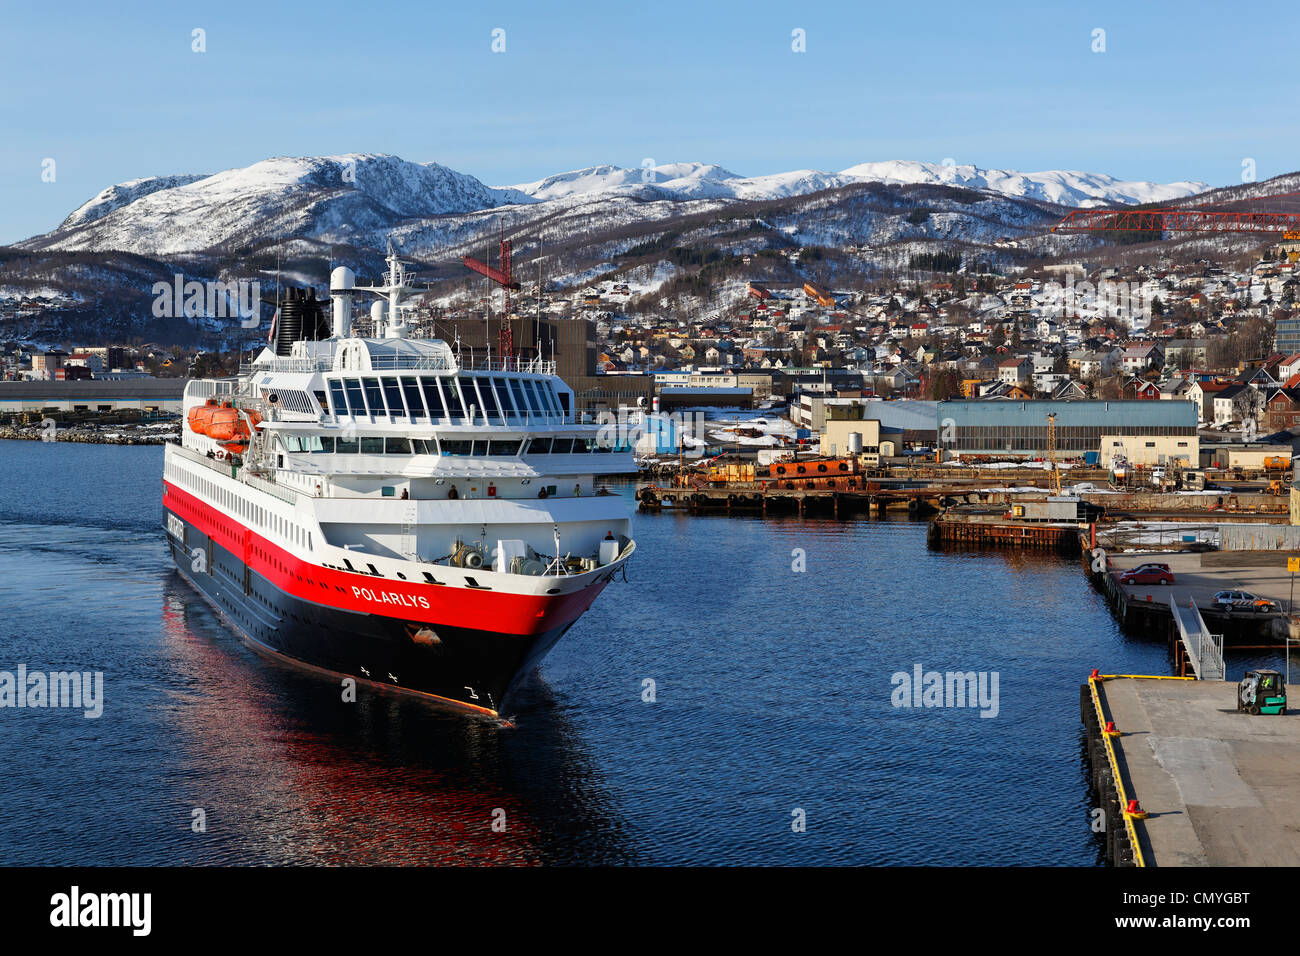 Norway, County of Troms, Harstad, stopover, Polarlys boat, shipping company Hurtigruten which assures since 1893 - Stock Image